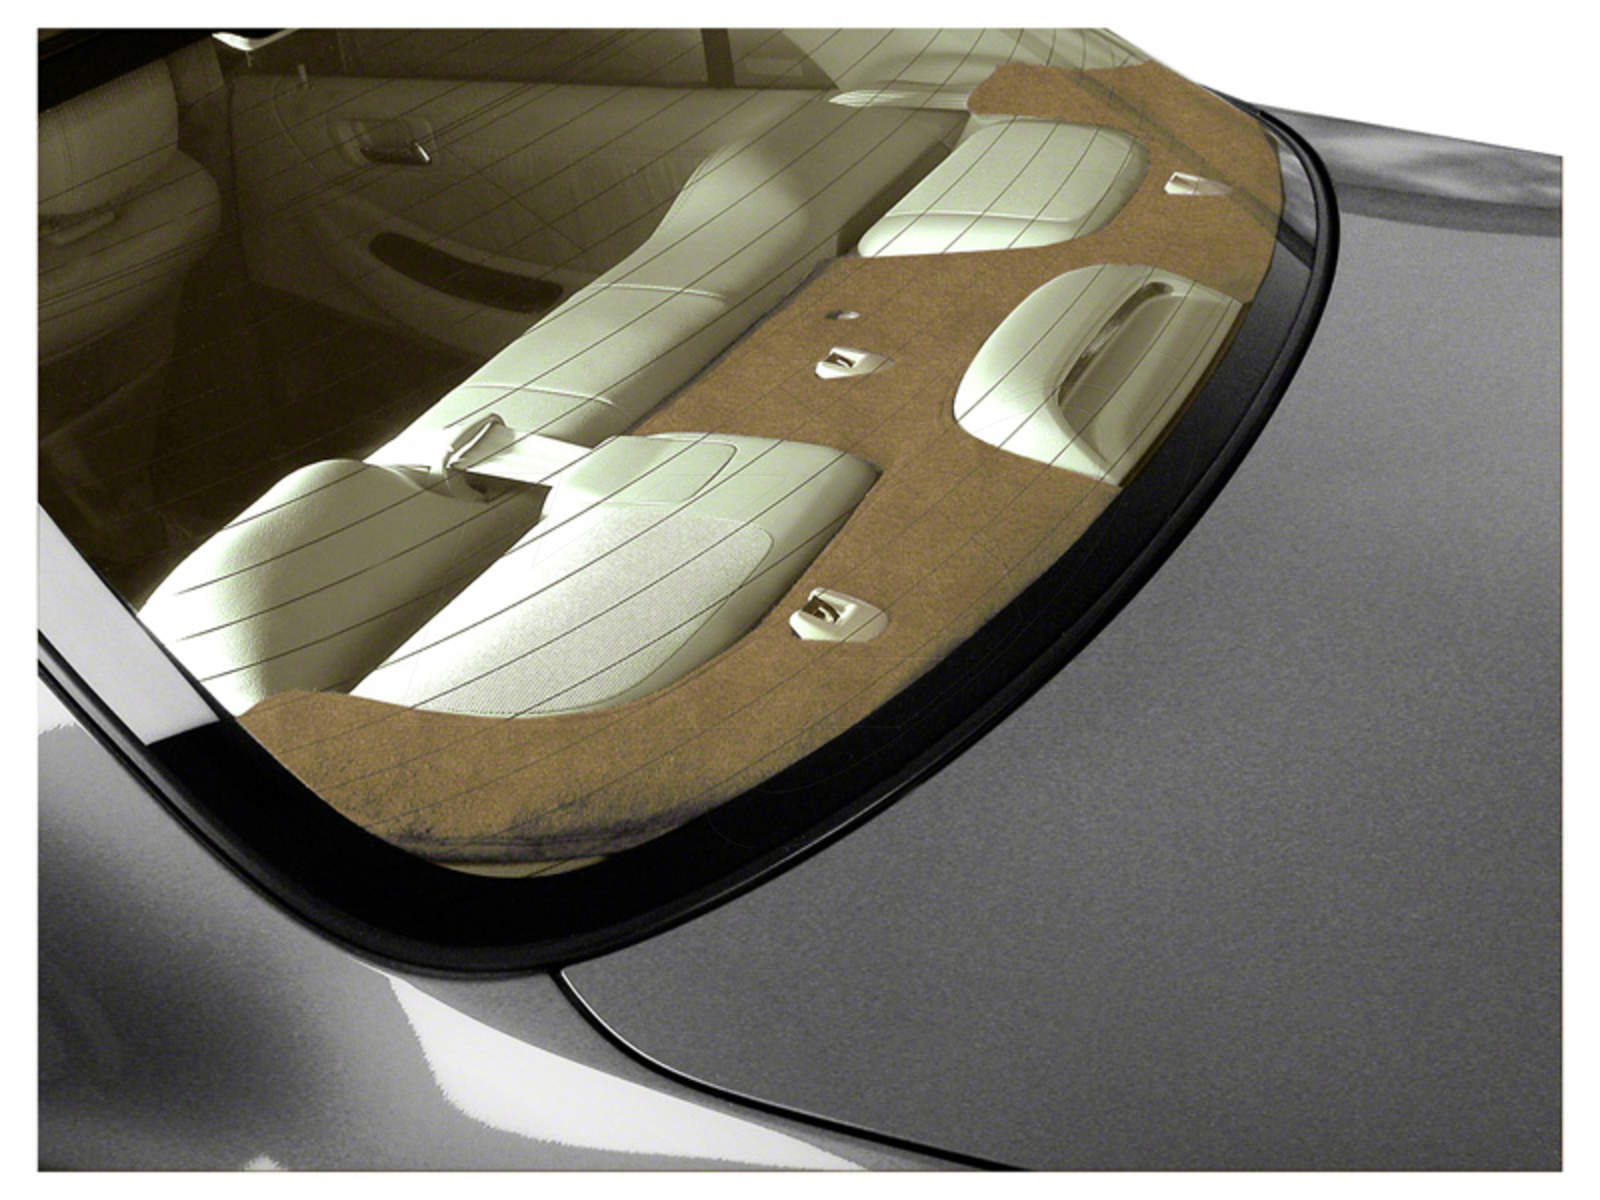 CUSTOM TAILORED REAR DECK COVERS SUEDE BEIGE, Oldsmobile